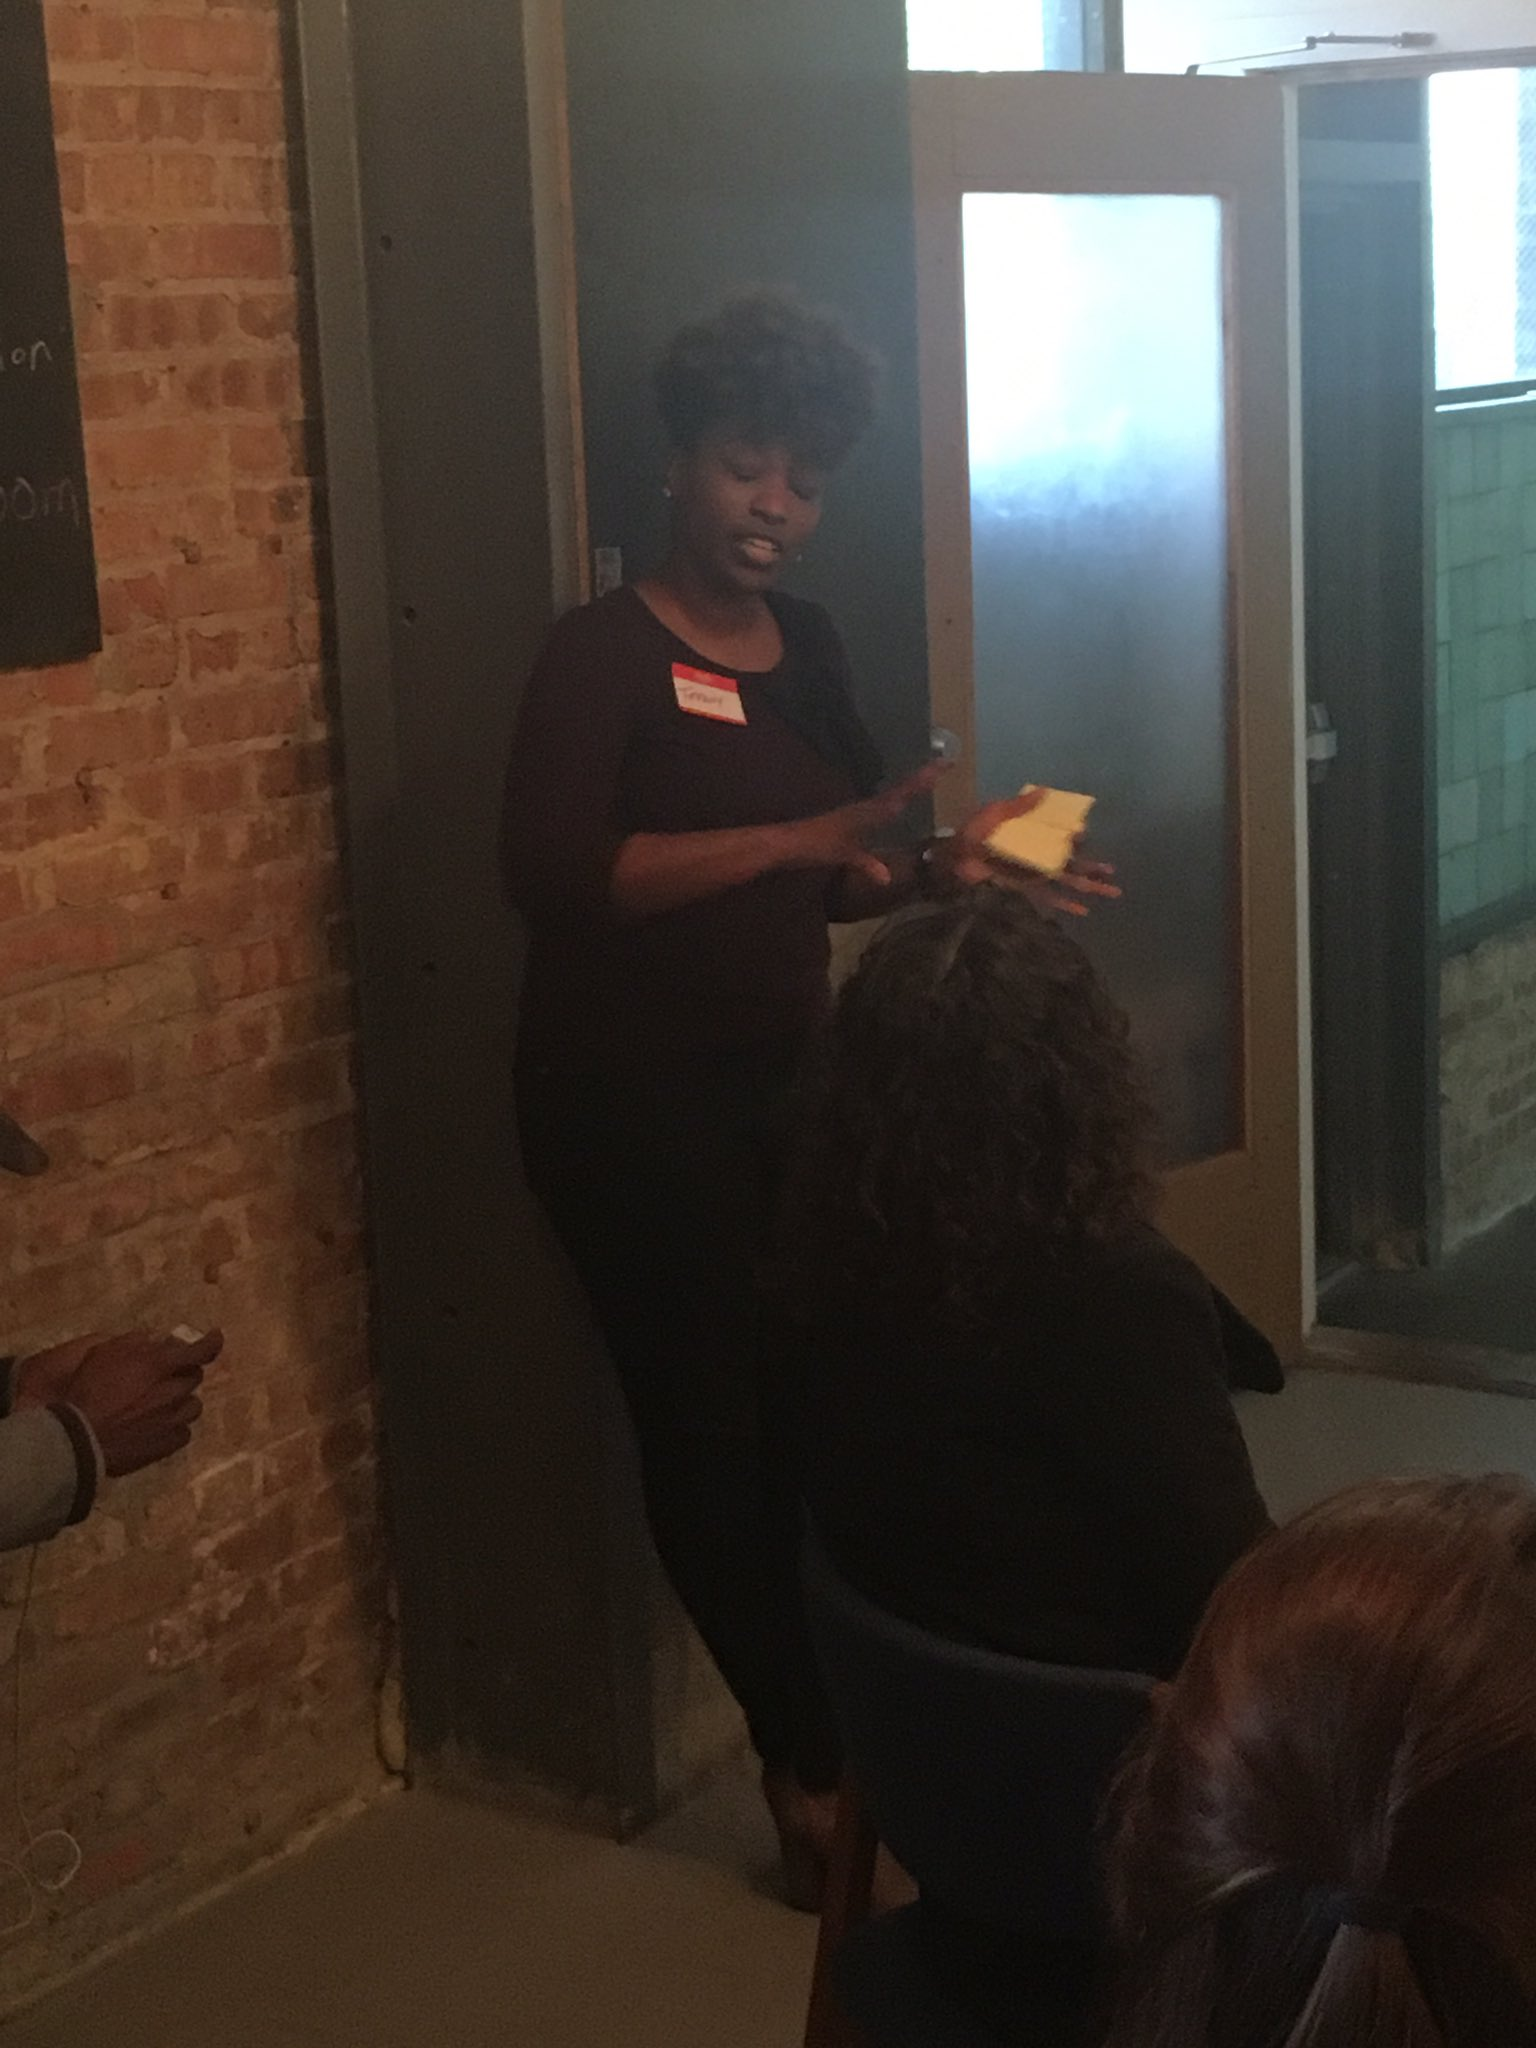 @TheTRiiBE is leading a #publicnewsroom addressing how crime is covered in Chicago https://t.co/hHqrNXtHiX